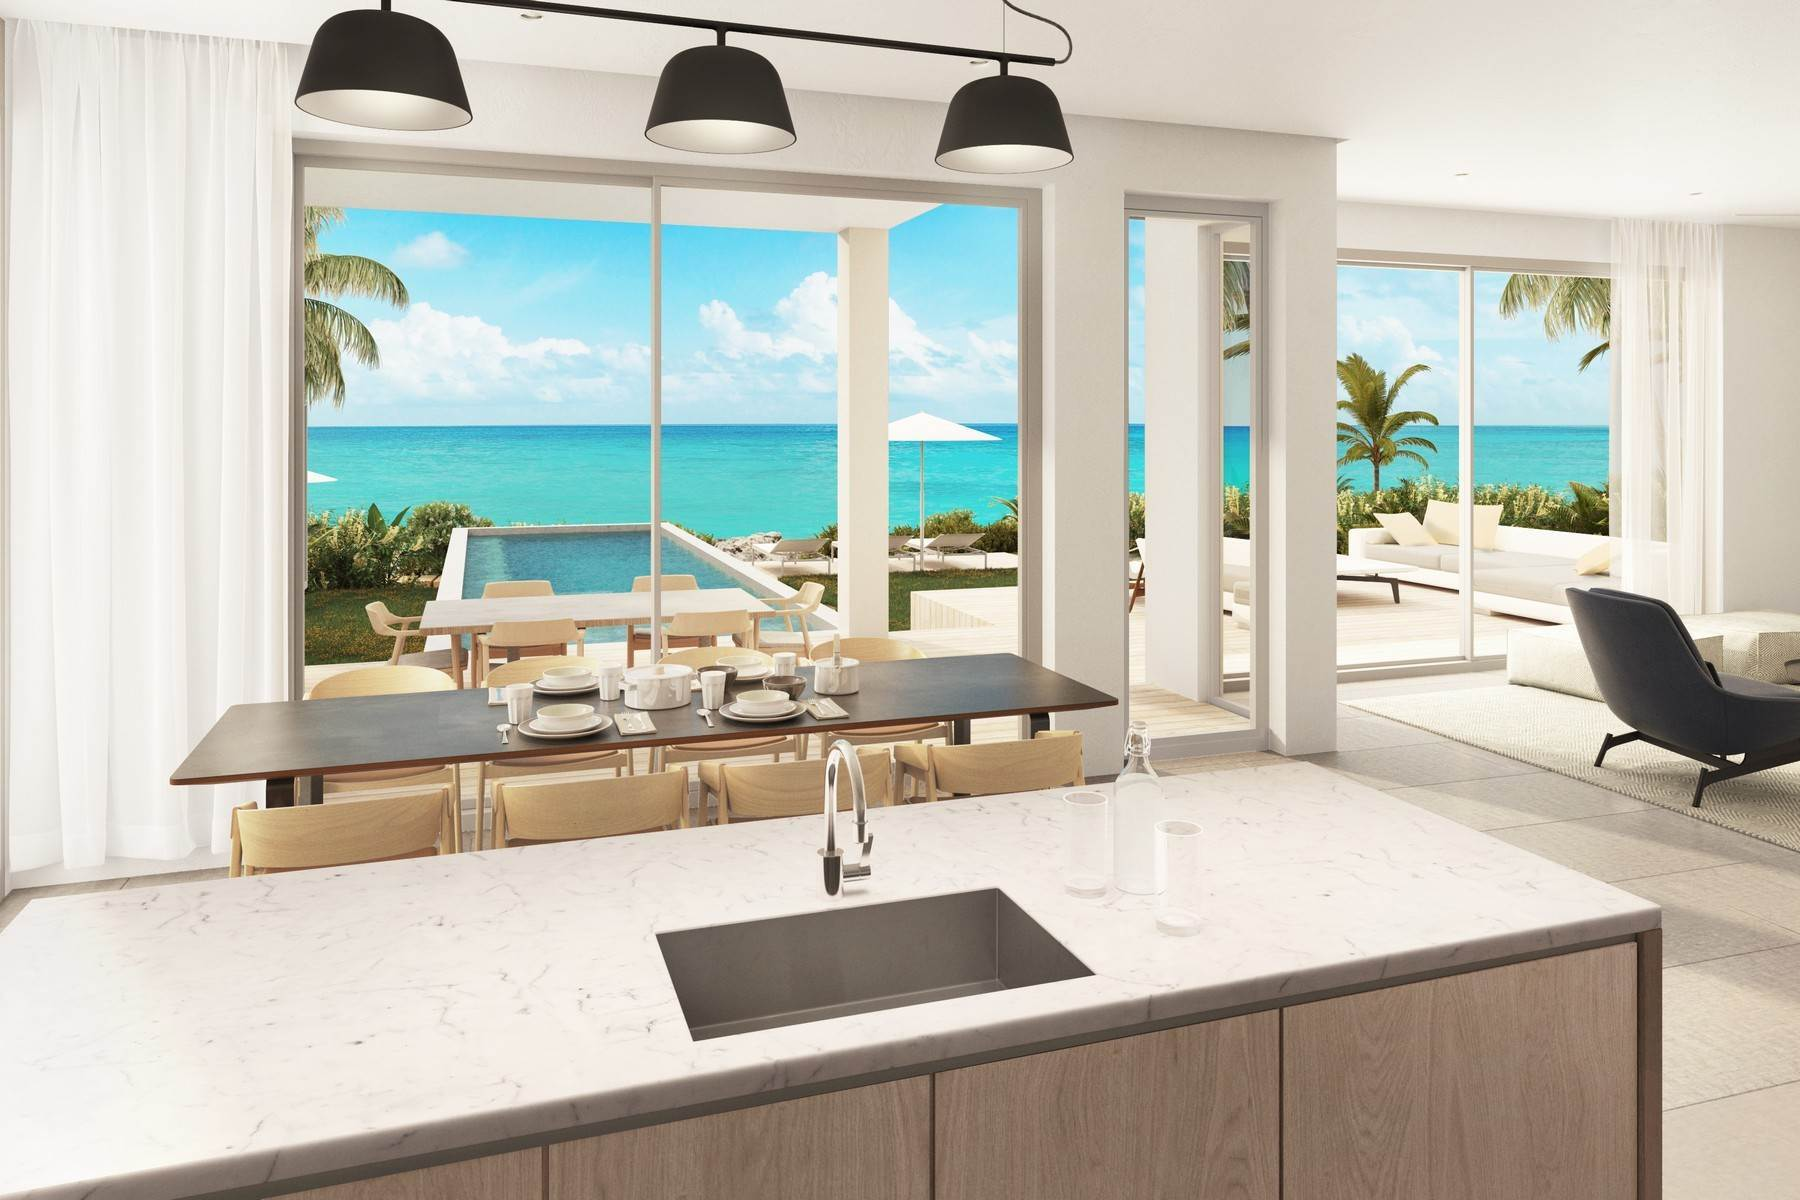 3. Single Family Homes for Sale at SOUTH BANK - THE OCEAN ESTATE II - REEF VILLA - VILLA 19 South Bank, Long Bay, Providenciales Turks And Caicos Islands